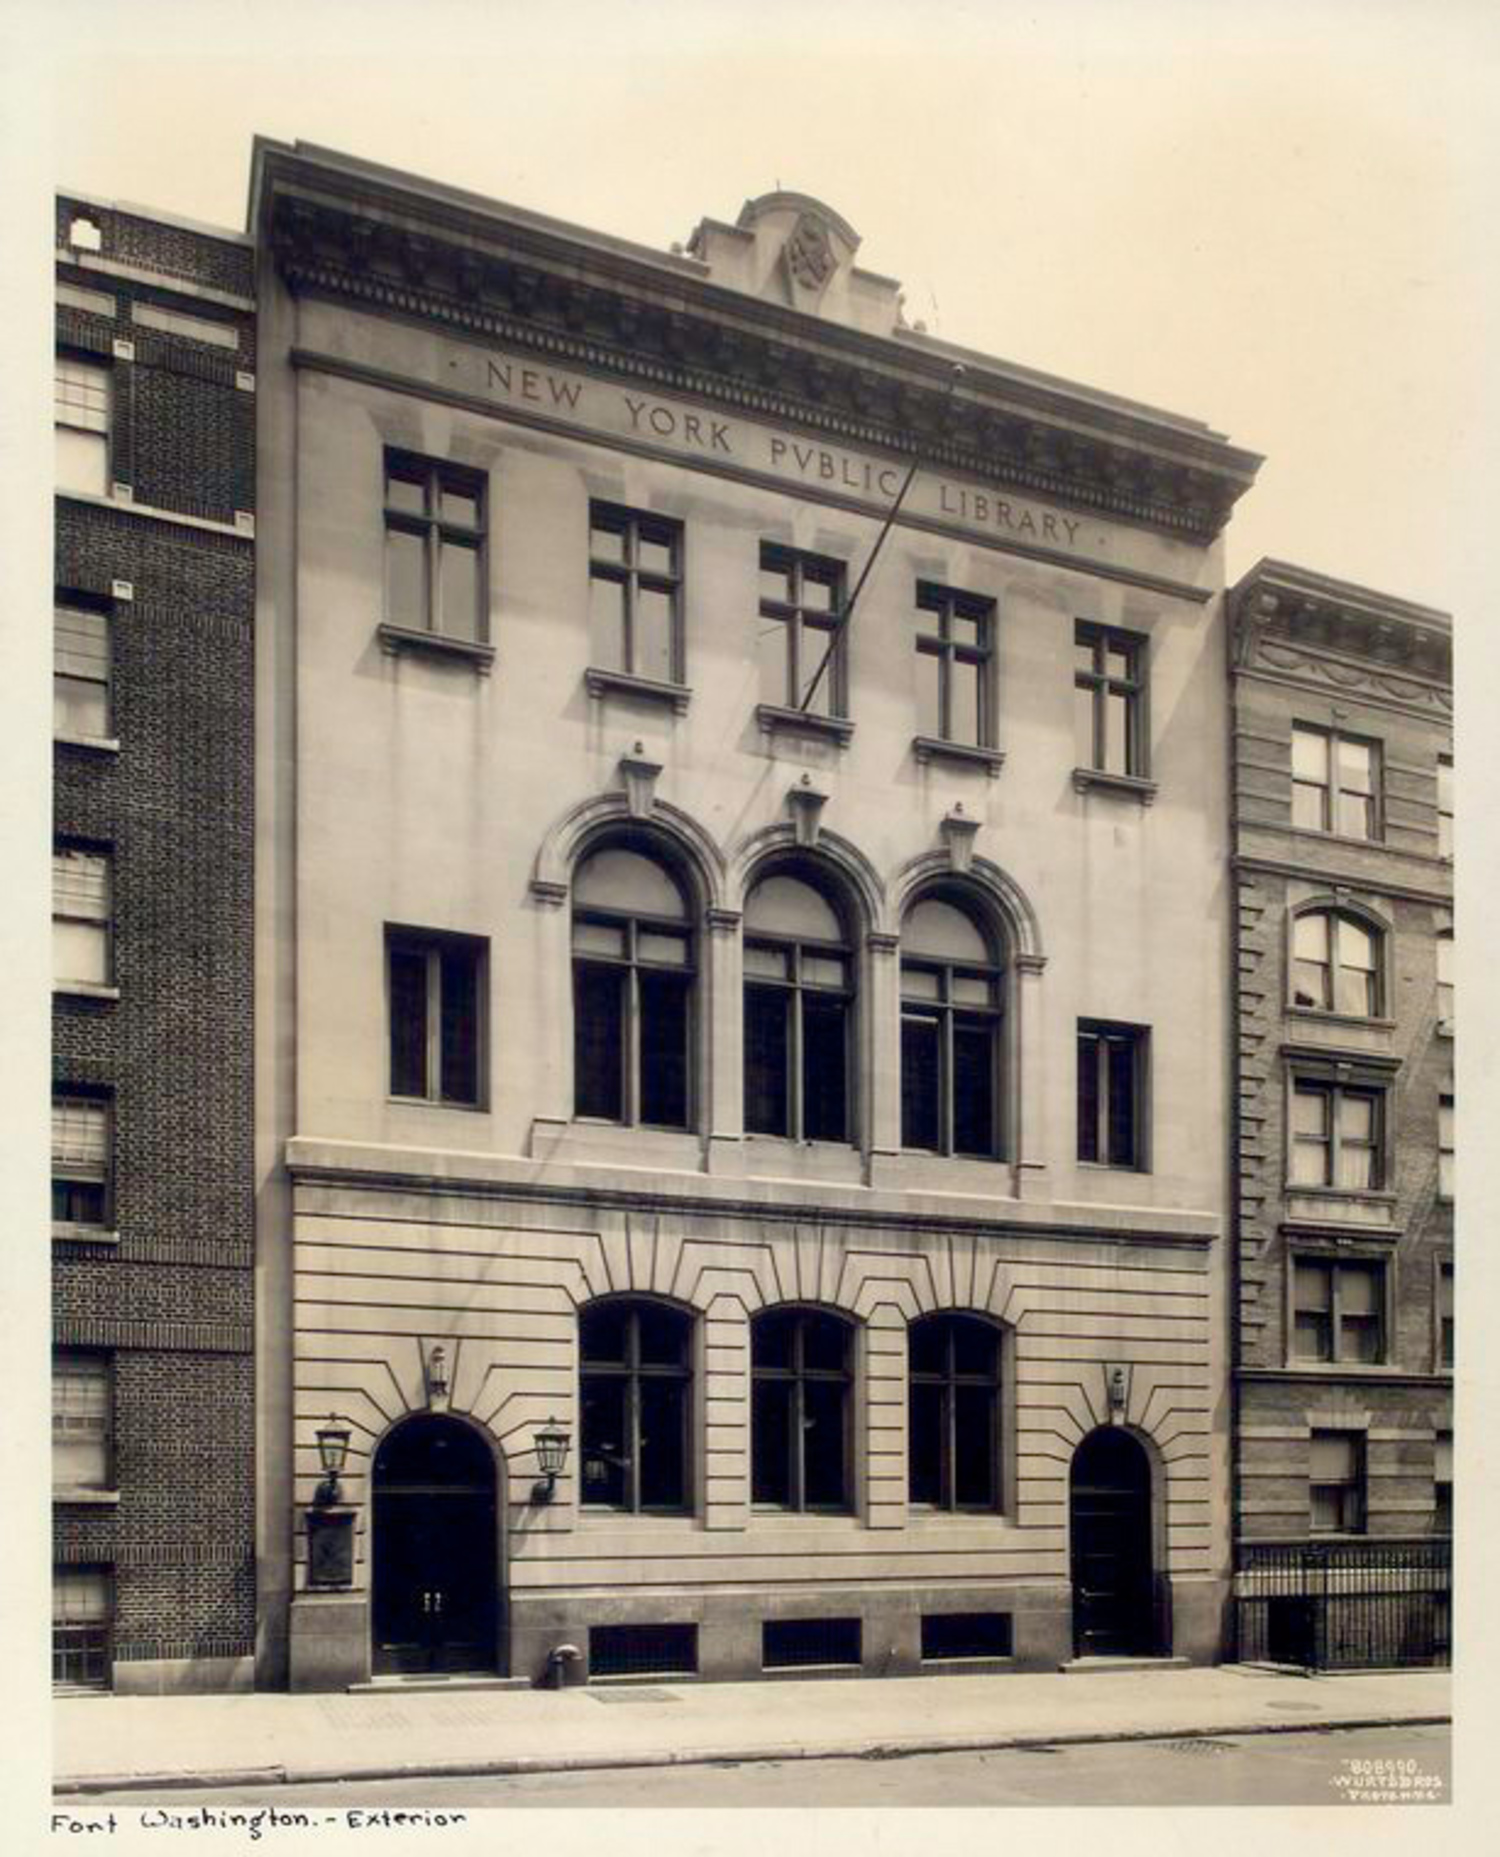 The exterior of the Fort Washington library the year it opened, 1914. The top floor windows are for the apartment.